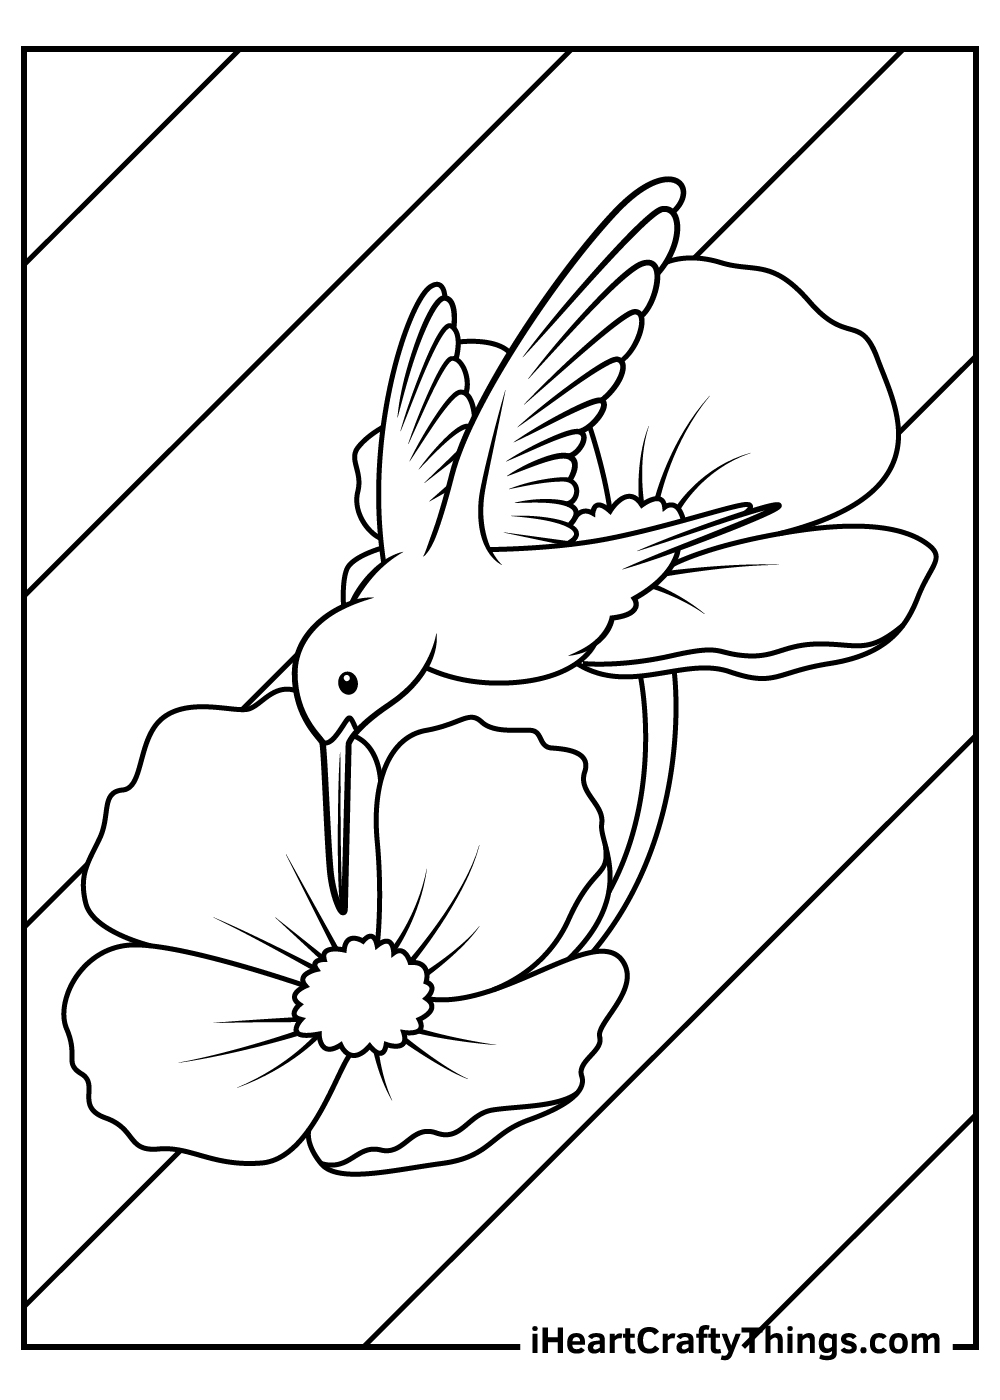 easy hummingbird coloring pages for kids